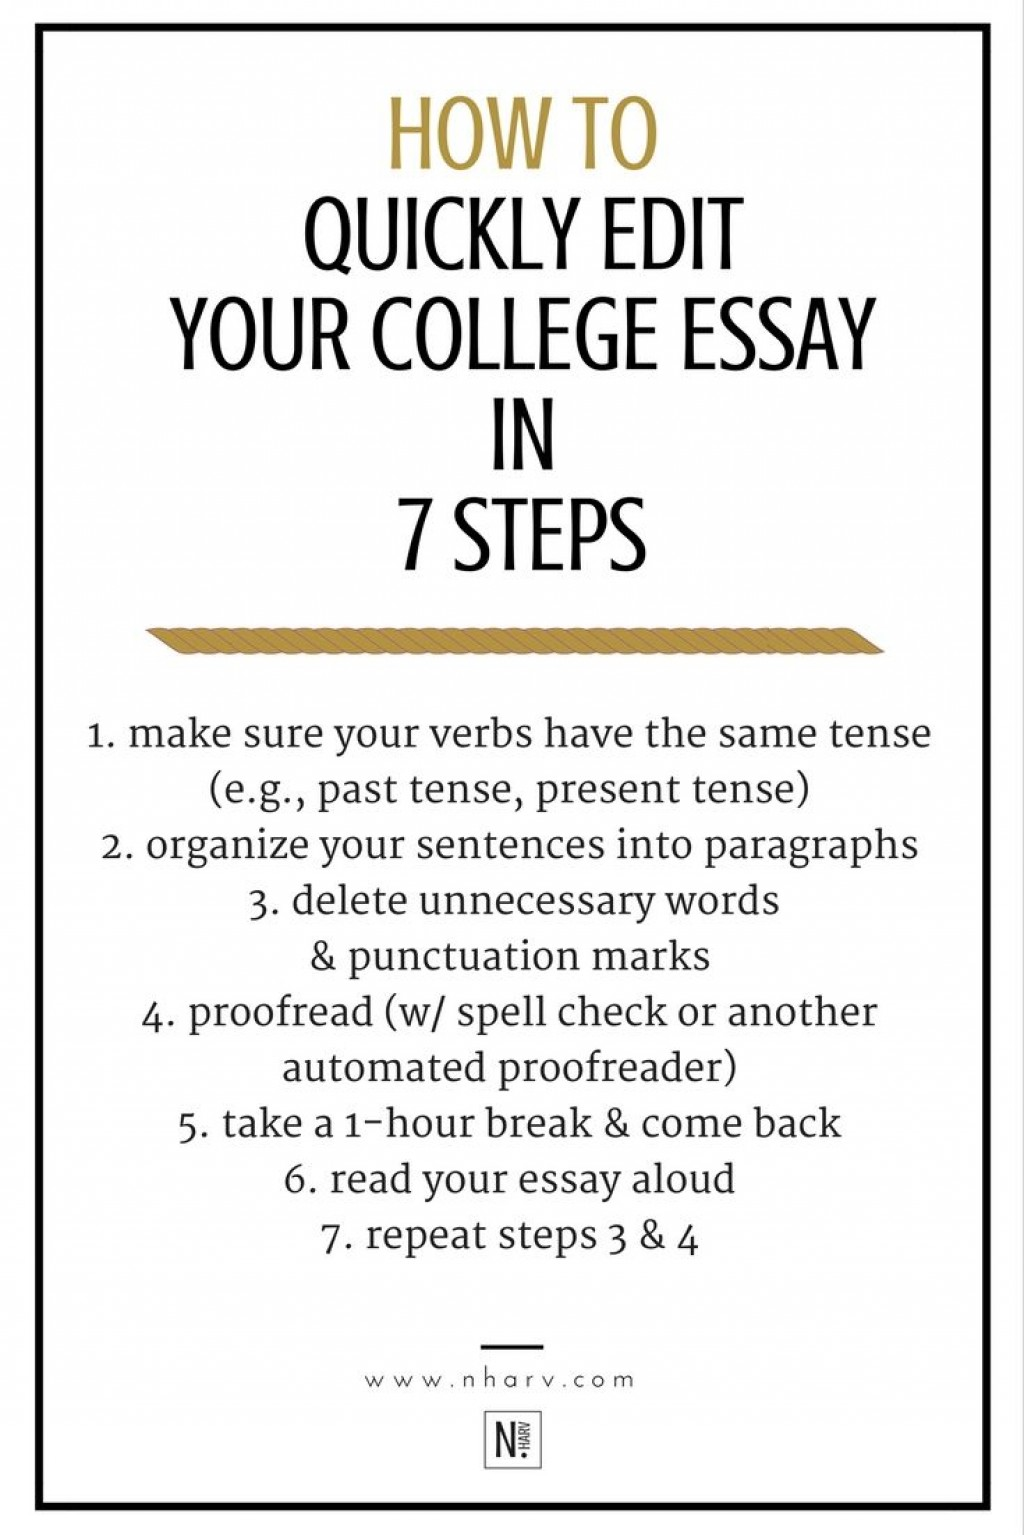 008 Essay Example College Editing Amazing Best Services Application Free Checklist Large